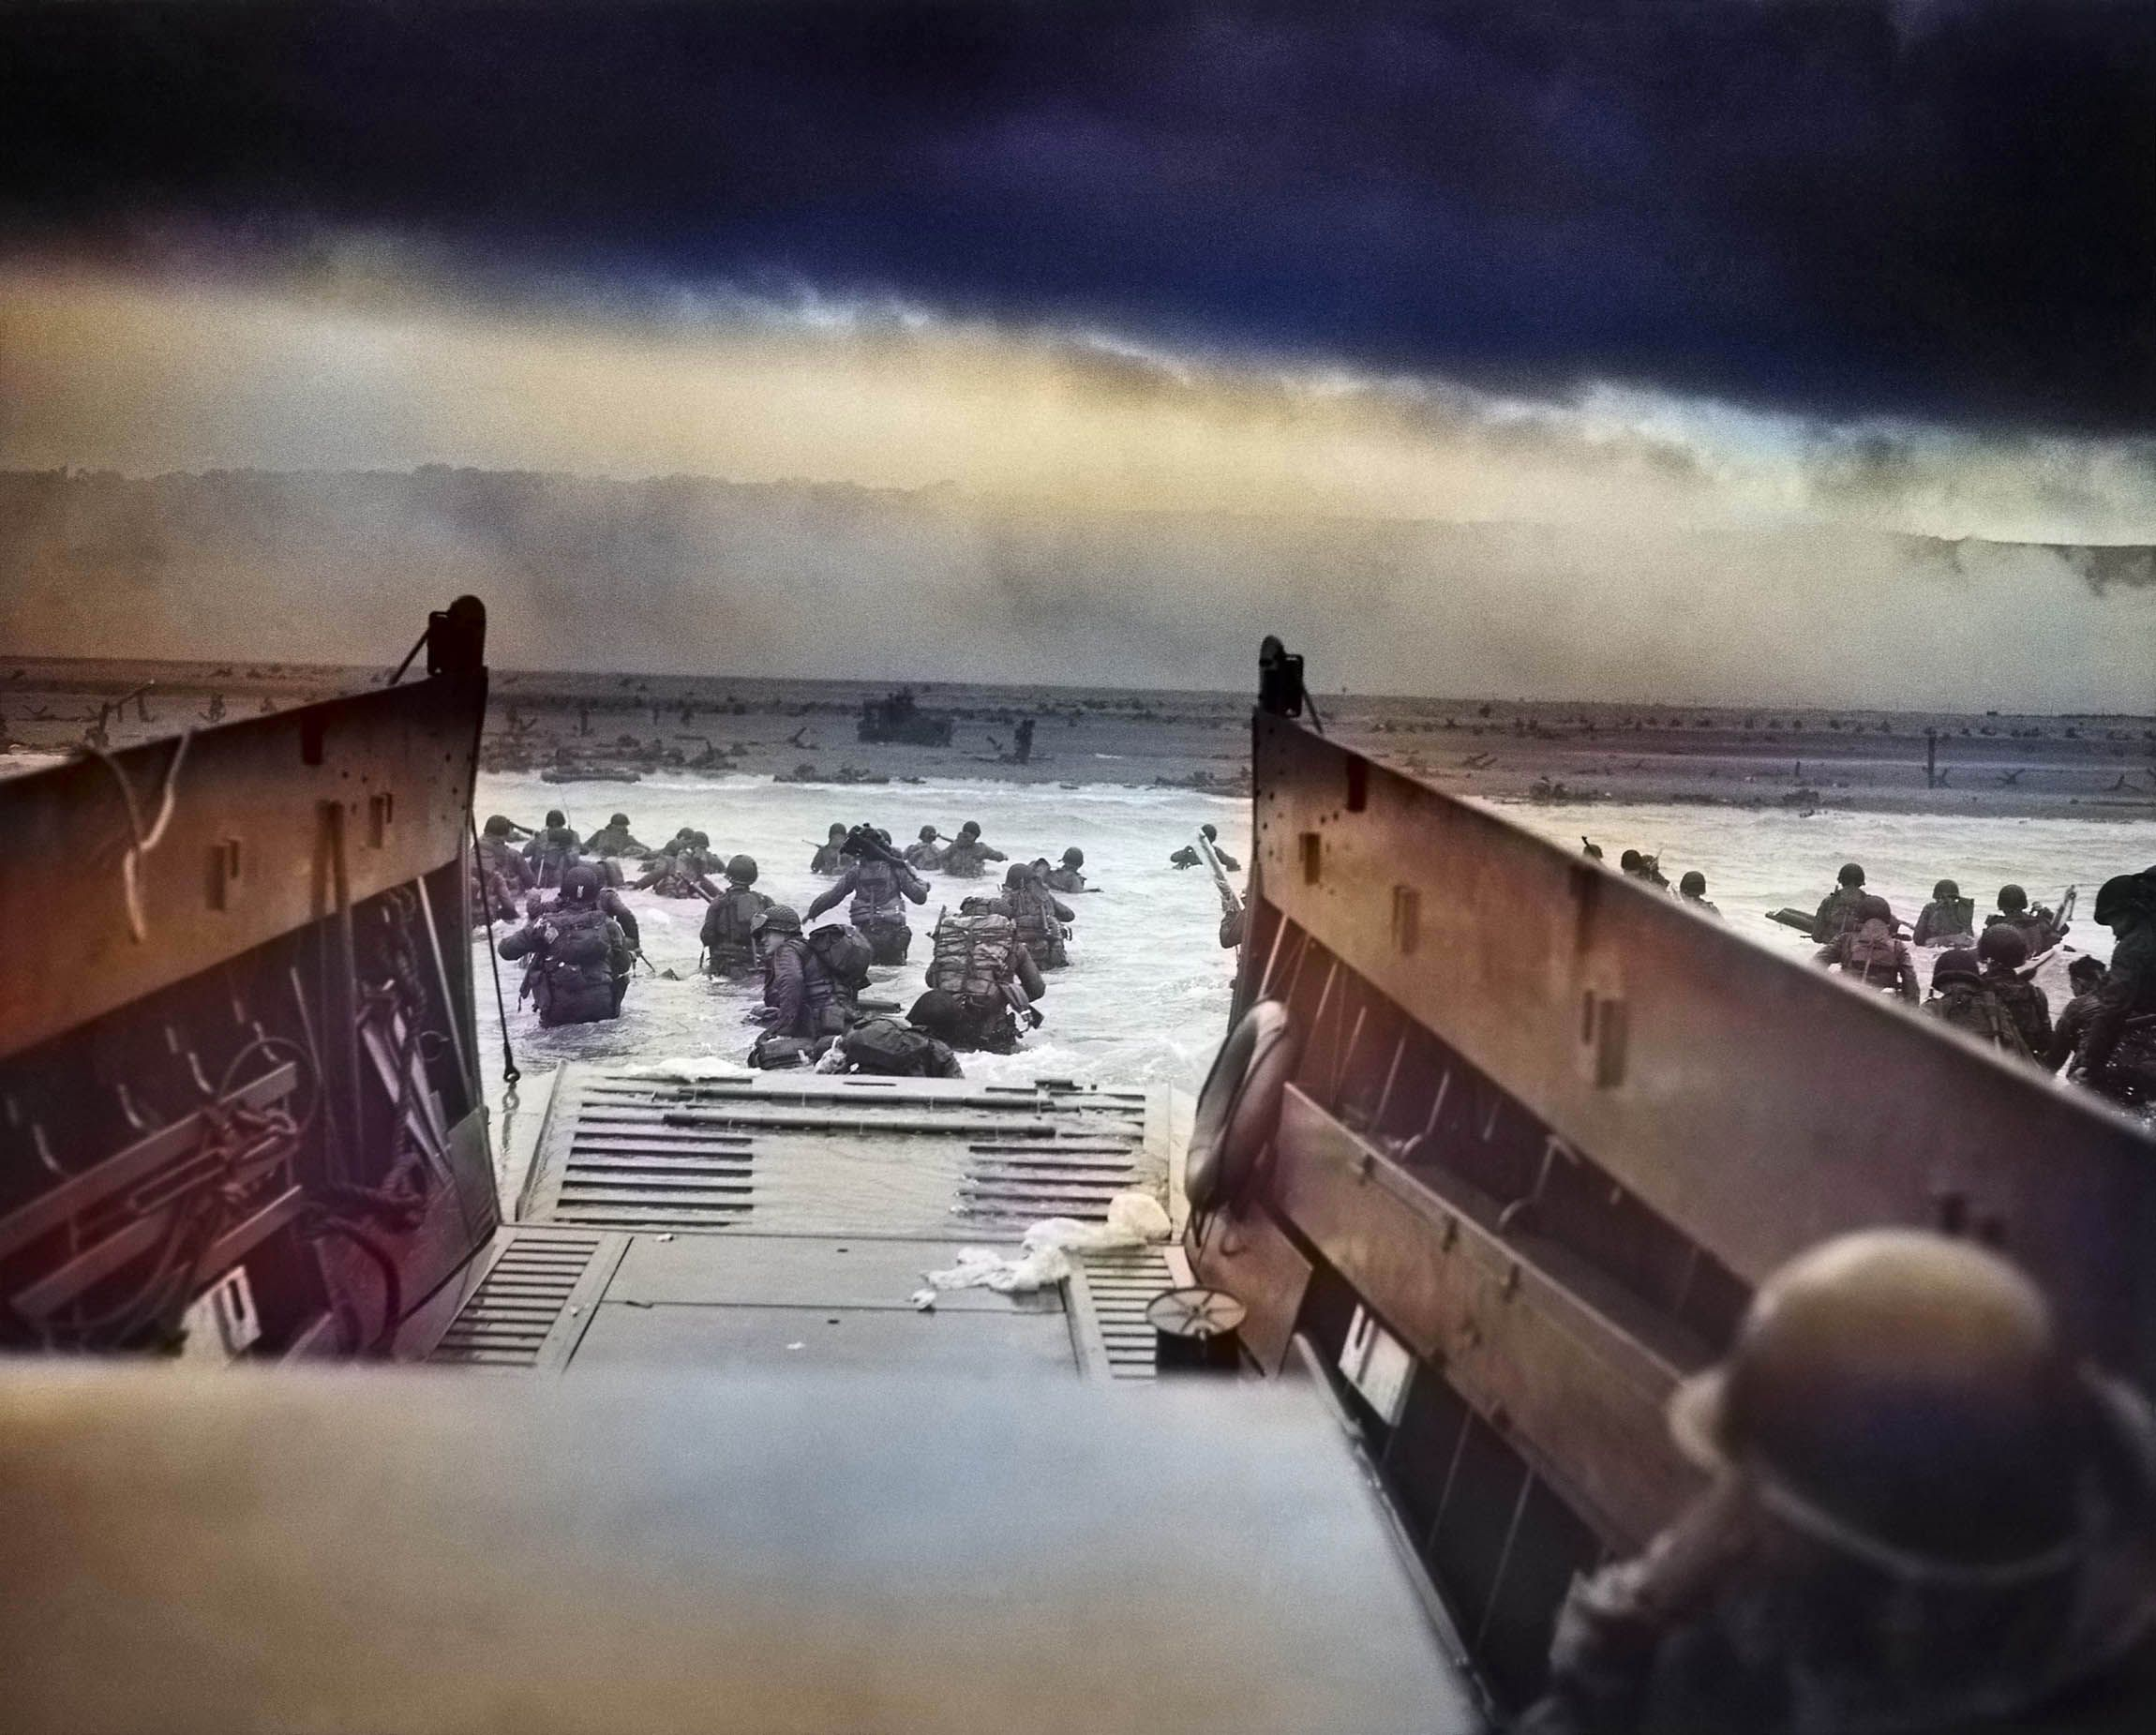 40 Photos From D-Day on Its 75th Anniversary